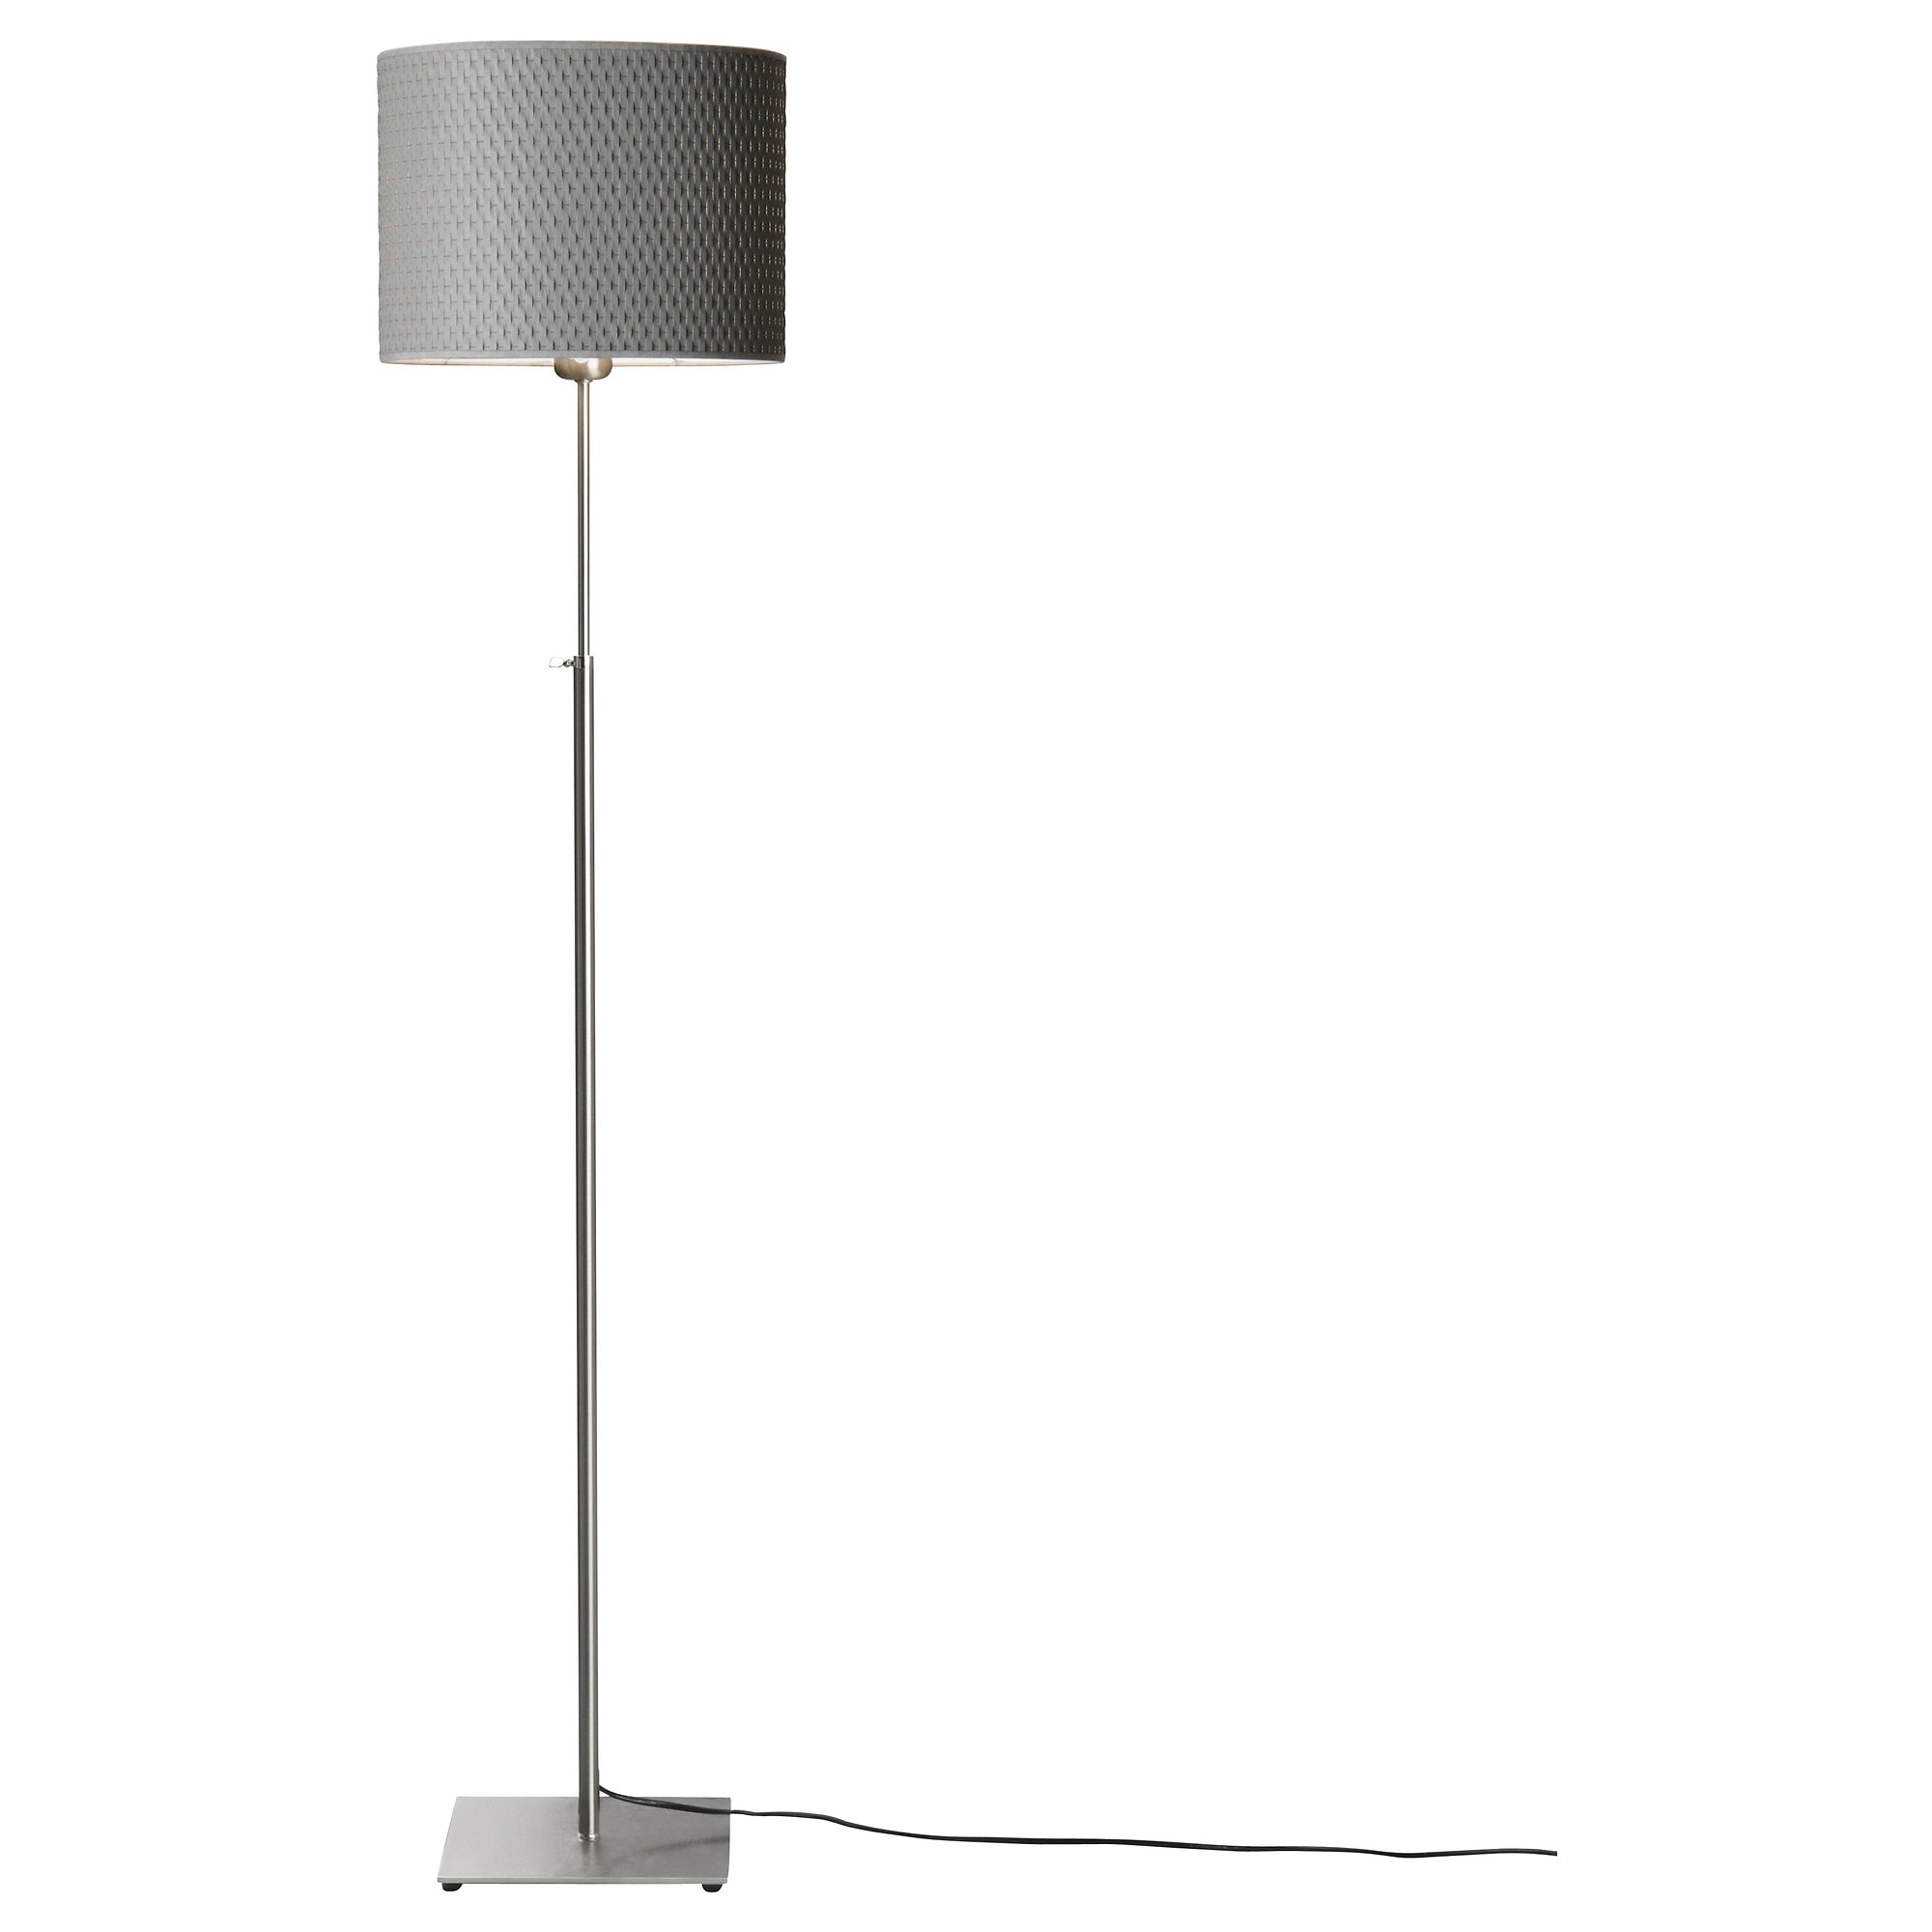 floor lamps  ikea - alÄng floor lamp nickel plated gray max  w min height